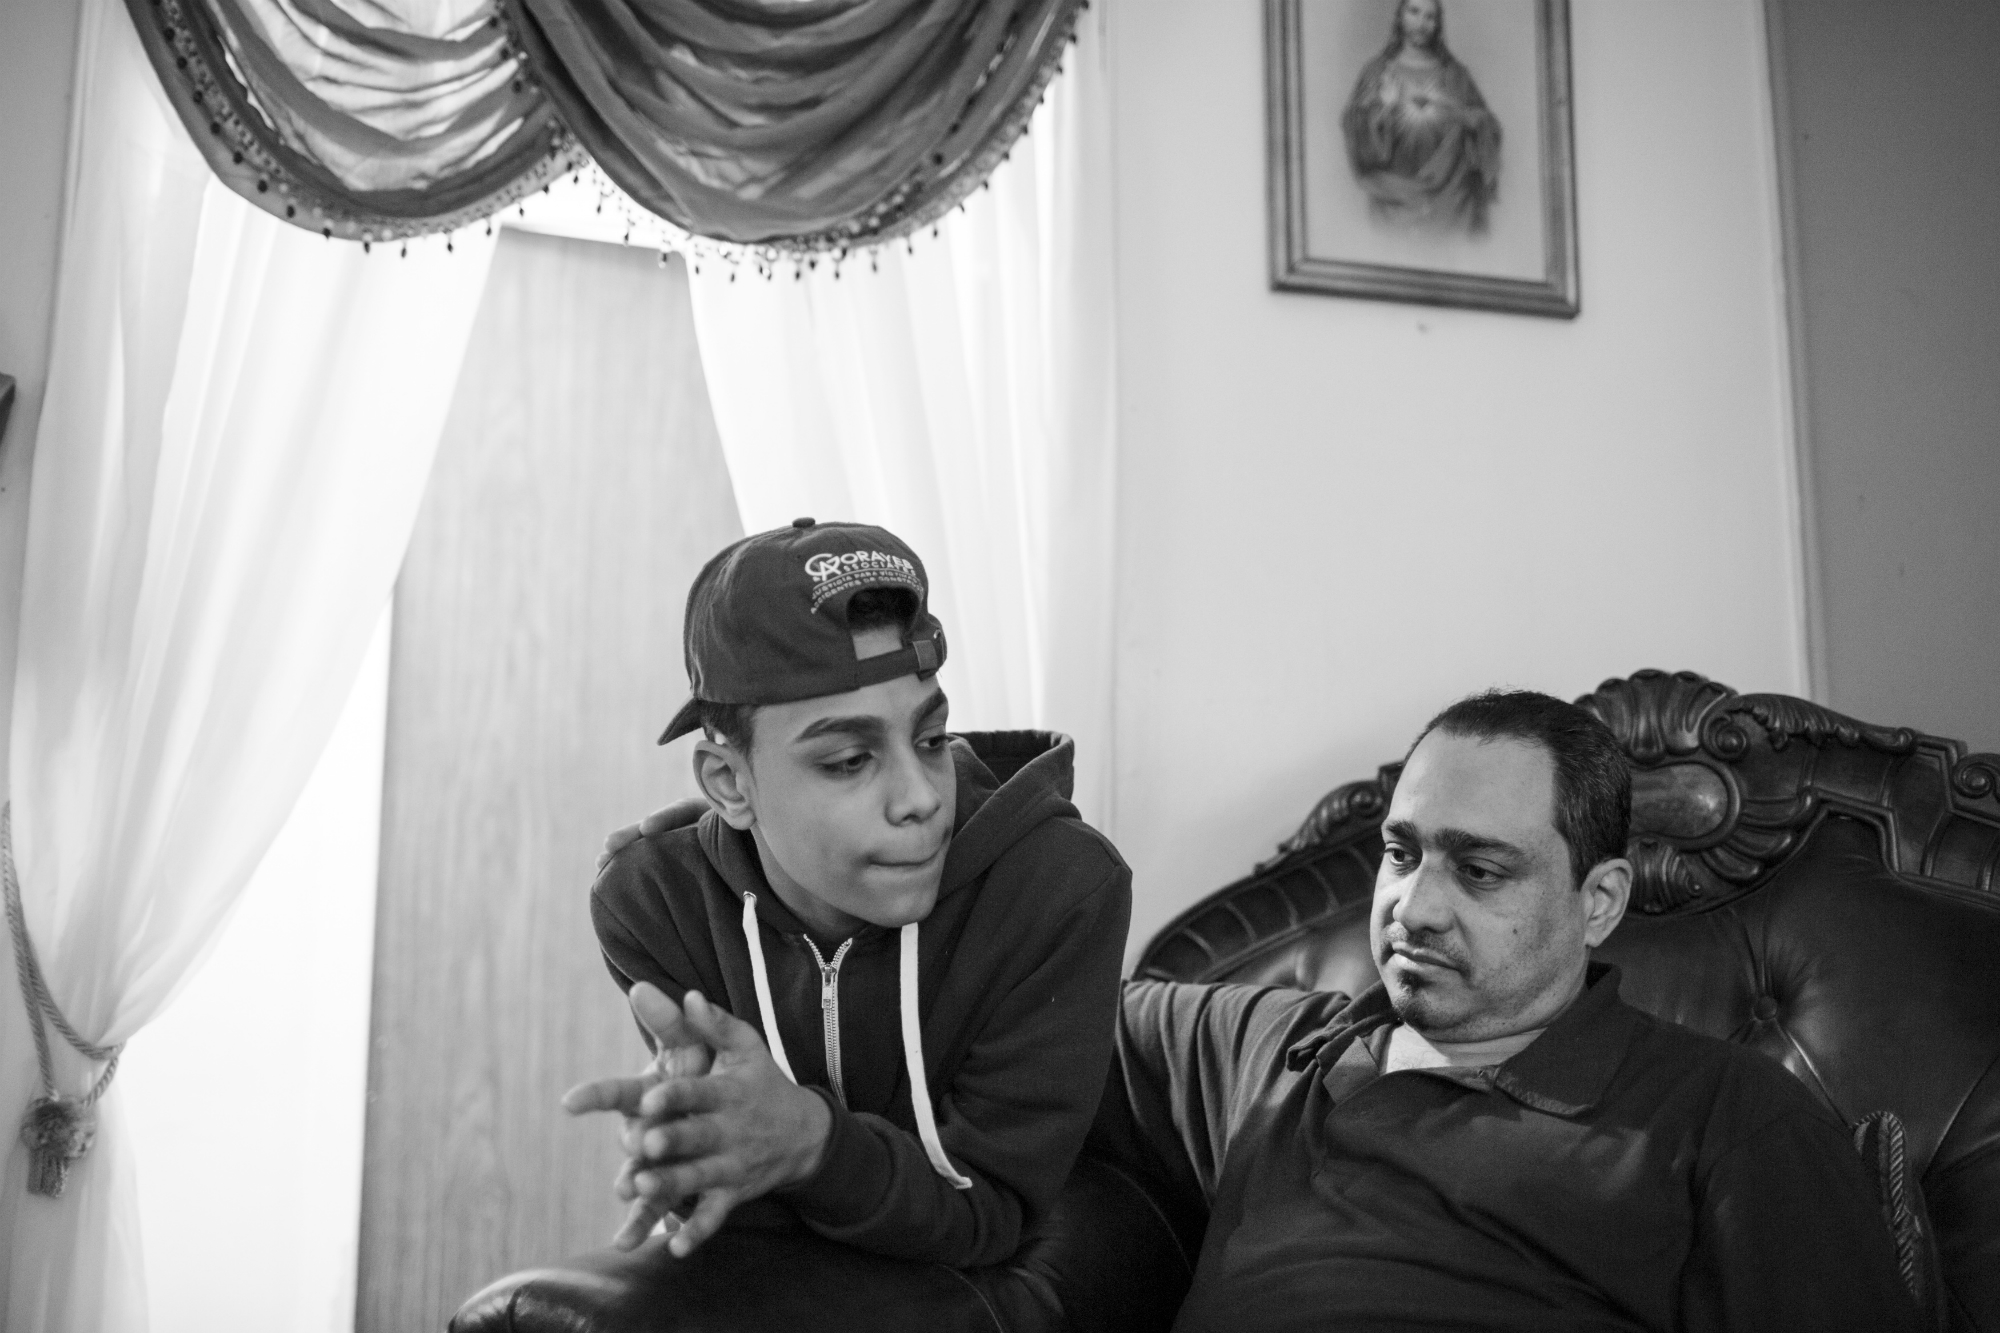 Chavi Leon with his dad in their living room, Feb 27, 2016, Patterson Projets, Mott Haven, South Bronx. Chavi's dad is one of his greatest inspirations in his life, pushing him to finish high school and pursue music. (Photo by Sarah Blesener/GroundTruth/Alexia Foundation)